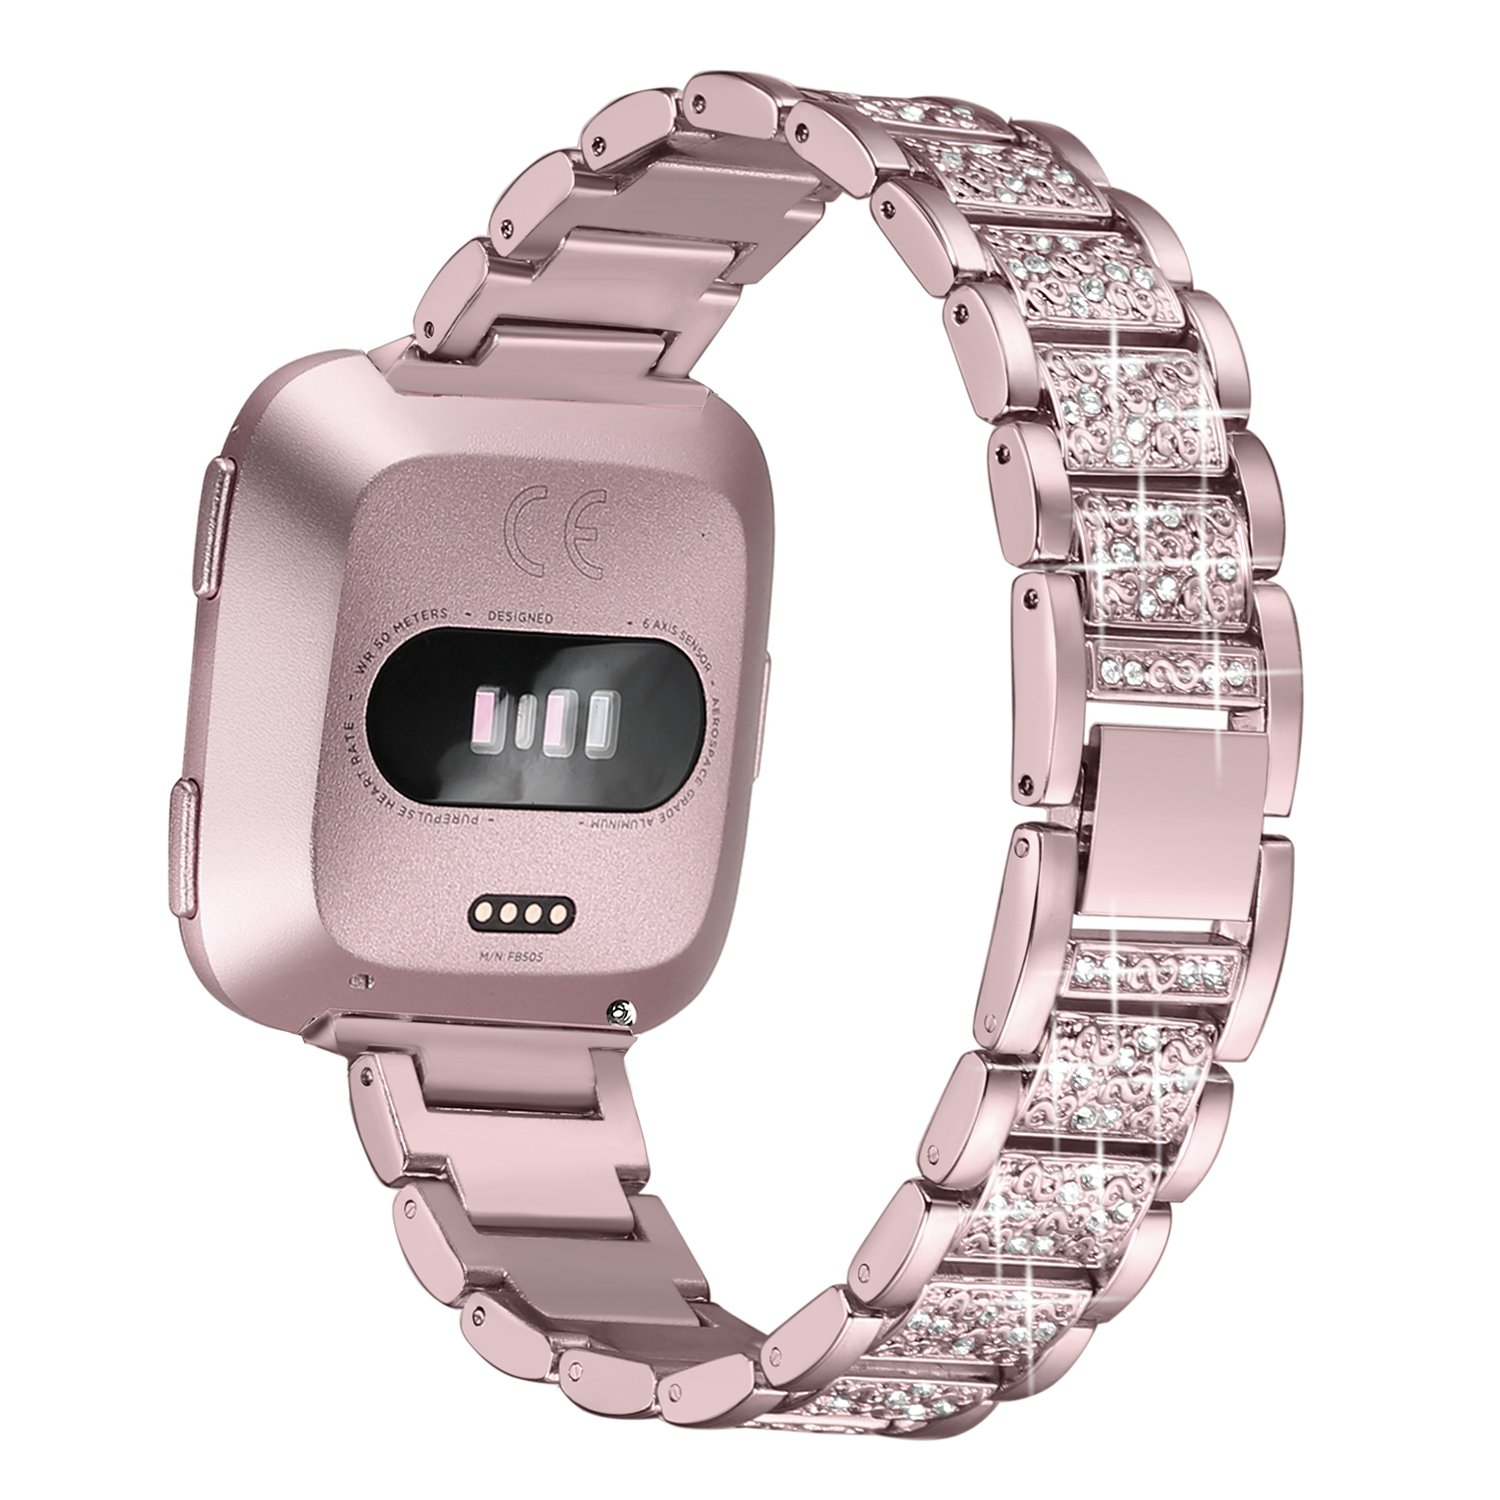 bayite Bling Bands Compatible with Fitbit Versa Band for Women, Metal Bracelet Replacement Wristband Smartwatch Accessories, Rose Gold